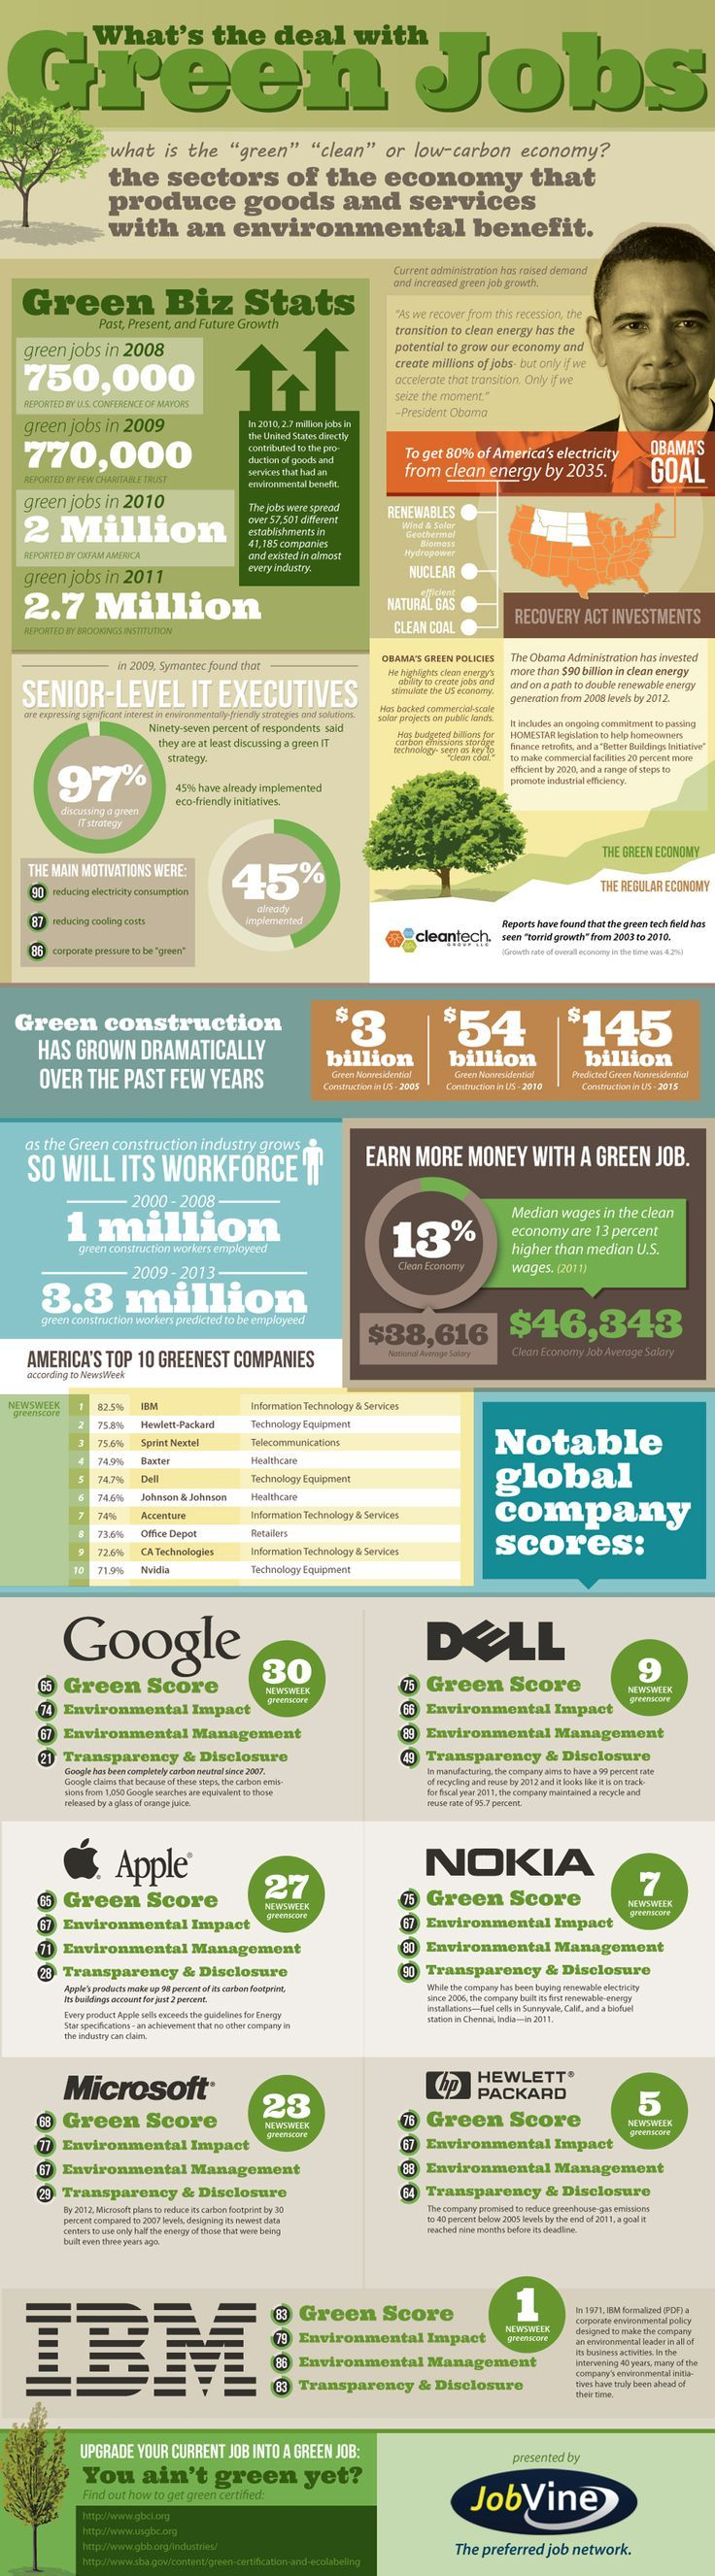 "Energy Efficient Home Upgrades in Los Angeles For $0 Down -- Home Improvement Hub -- Via - Infographic: ""Tech Companies Ramping Up the Green Jobs"" -Take a look at the green profiles of IBM, Apple, Google, Dell, Nokia, HP and Microsoft, and check out the other stats in the infographic below, produced by JobVine."